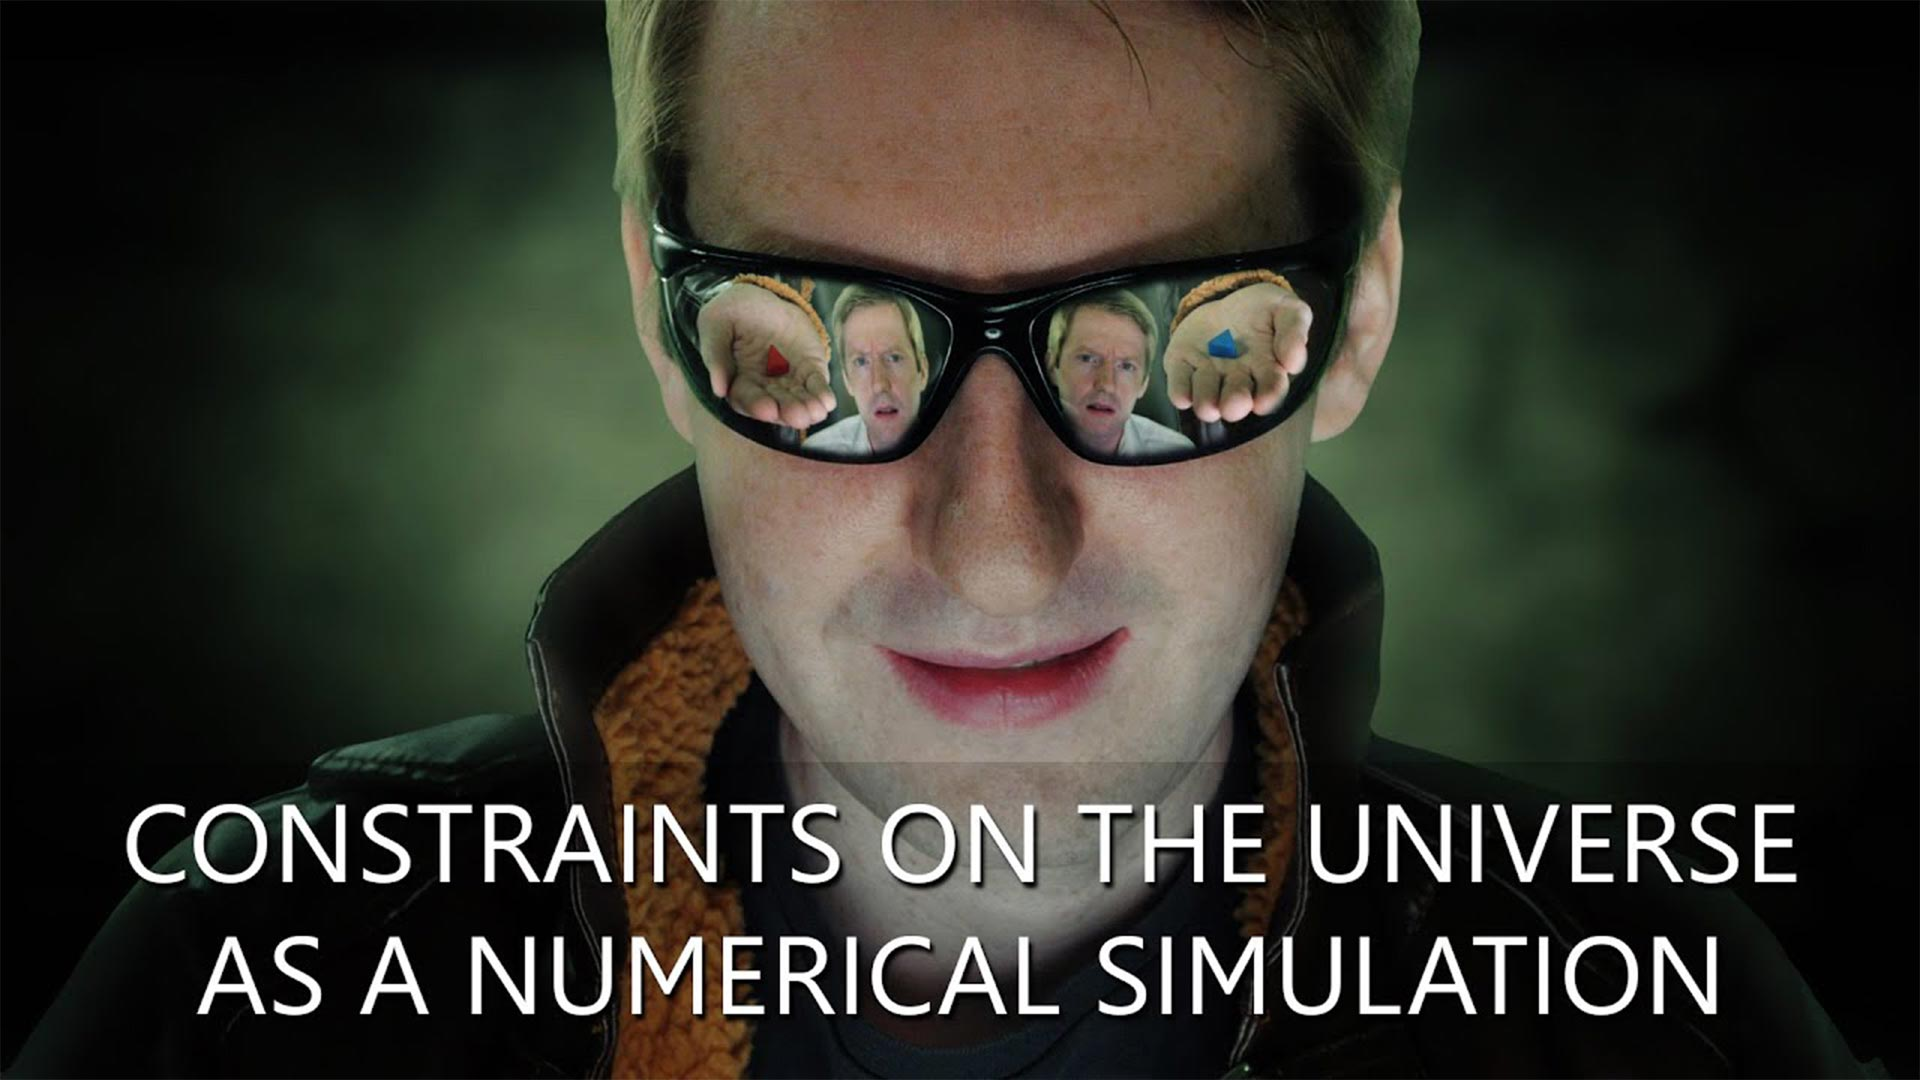 Constraints on the Universe as a Numerical Simulation